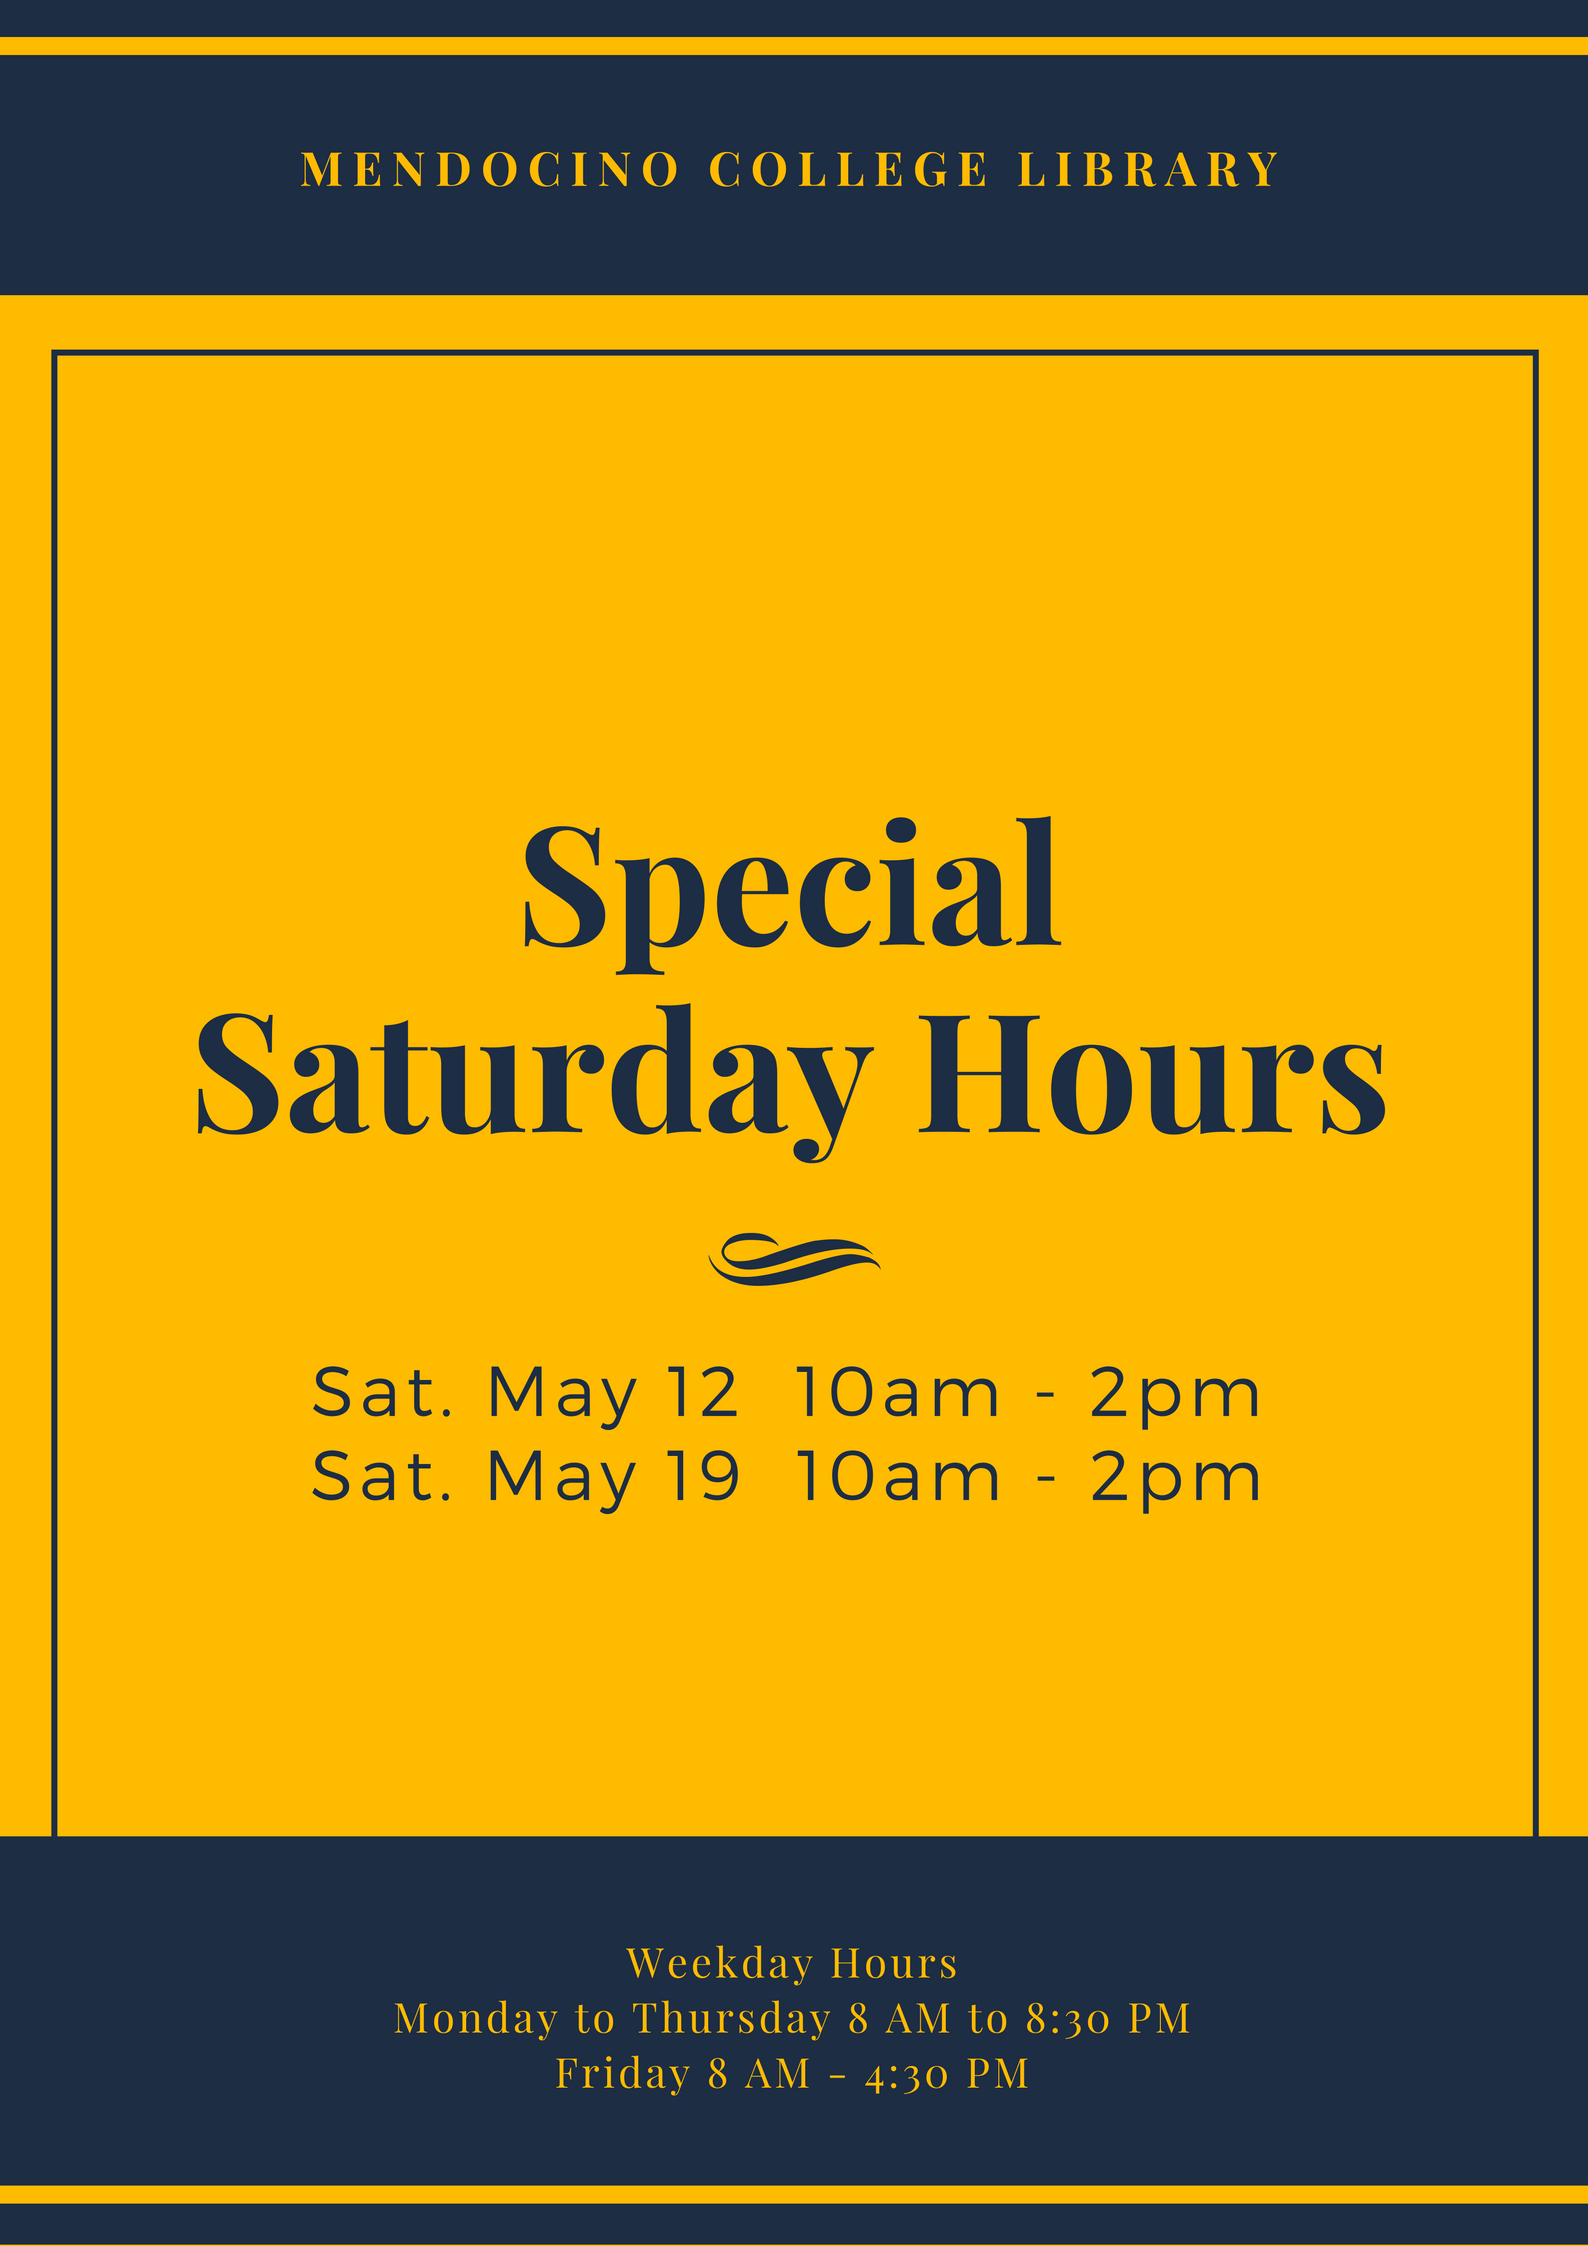 Spring 2018 Saturday Hours